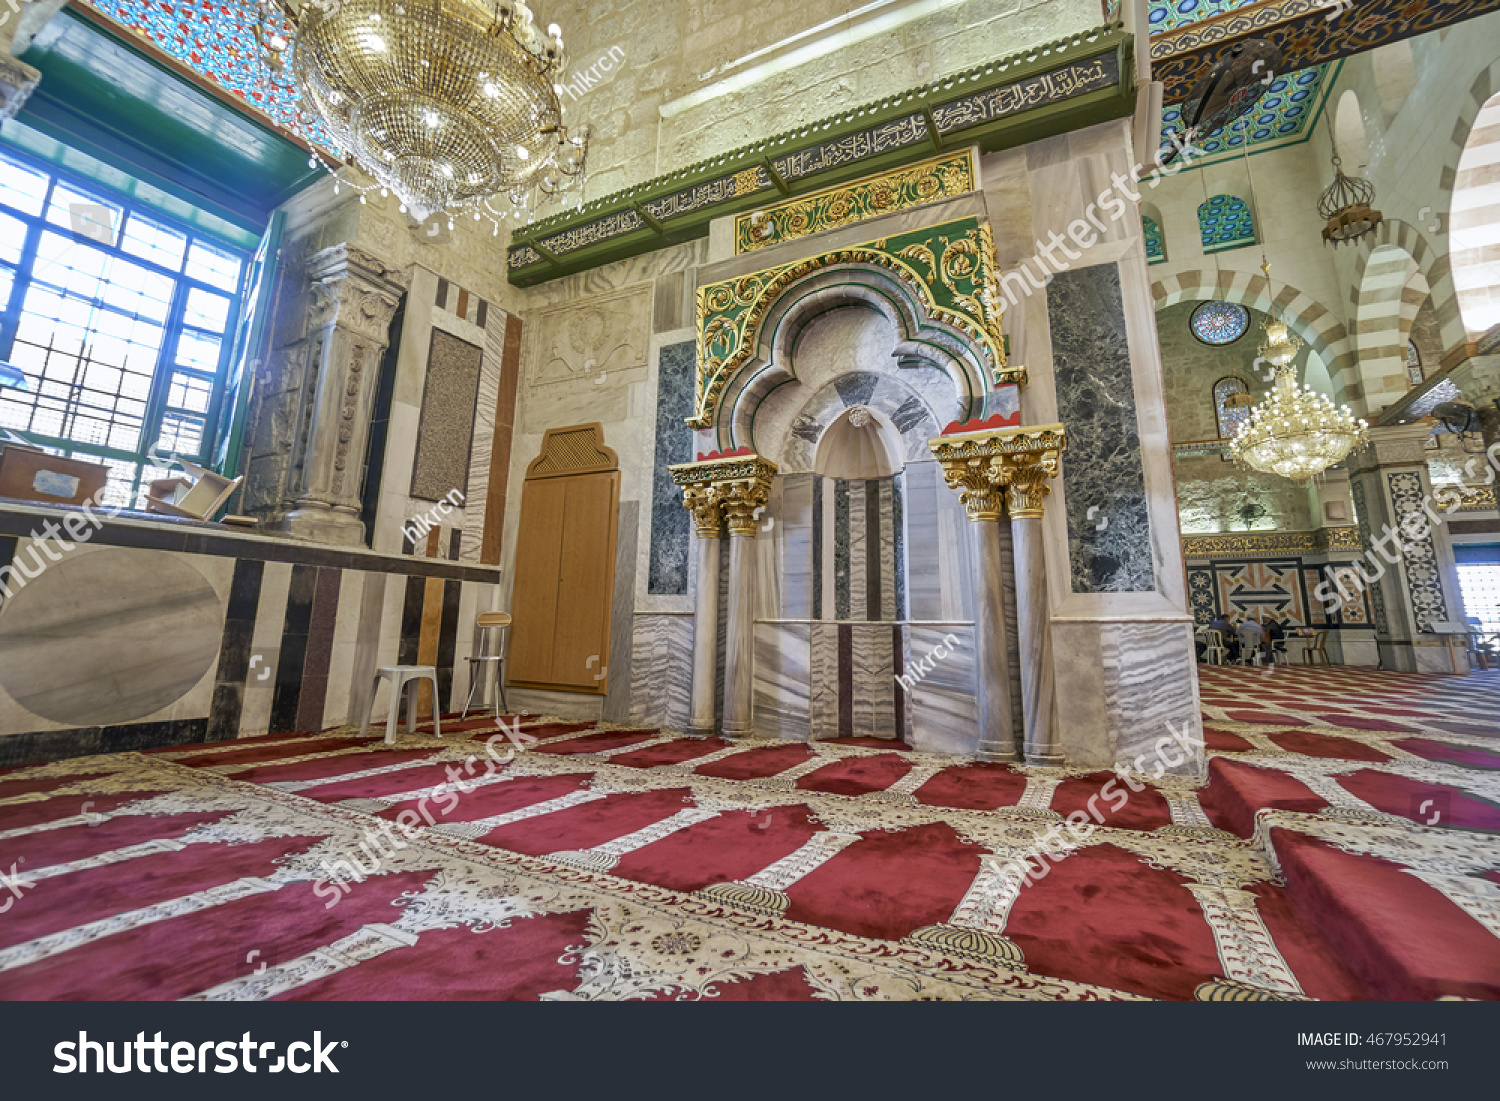 JERUSALEM PALESTINE ISRAEL JUNE 3 2016 View of one of the altars located in the Al Aqsa mosque Jerusalem on June 3 2016 Al Aqsa Mosque in Jerusalem the 3rd holiest site in Islam